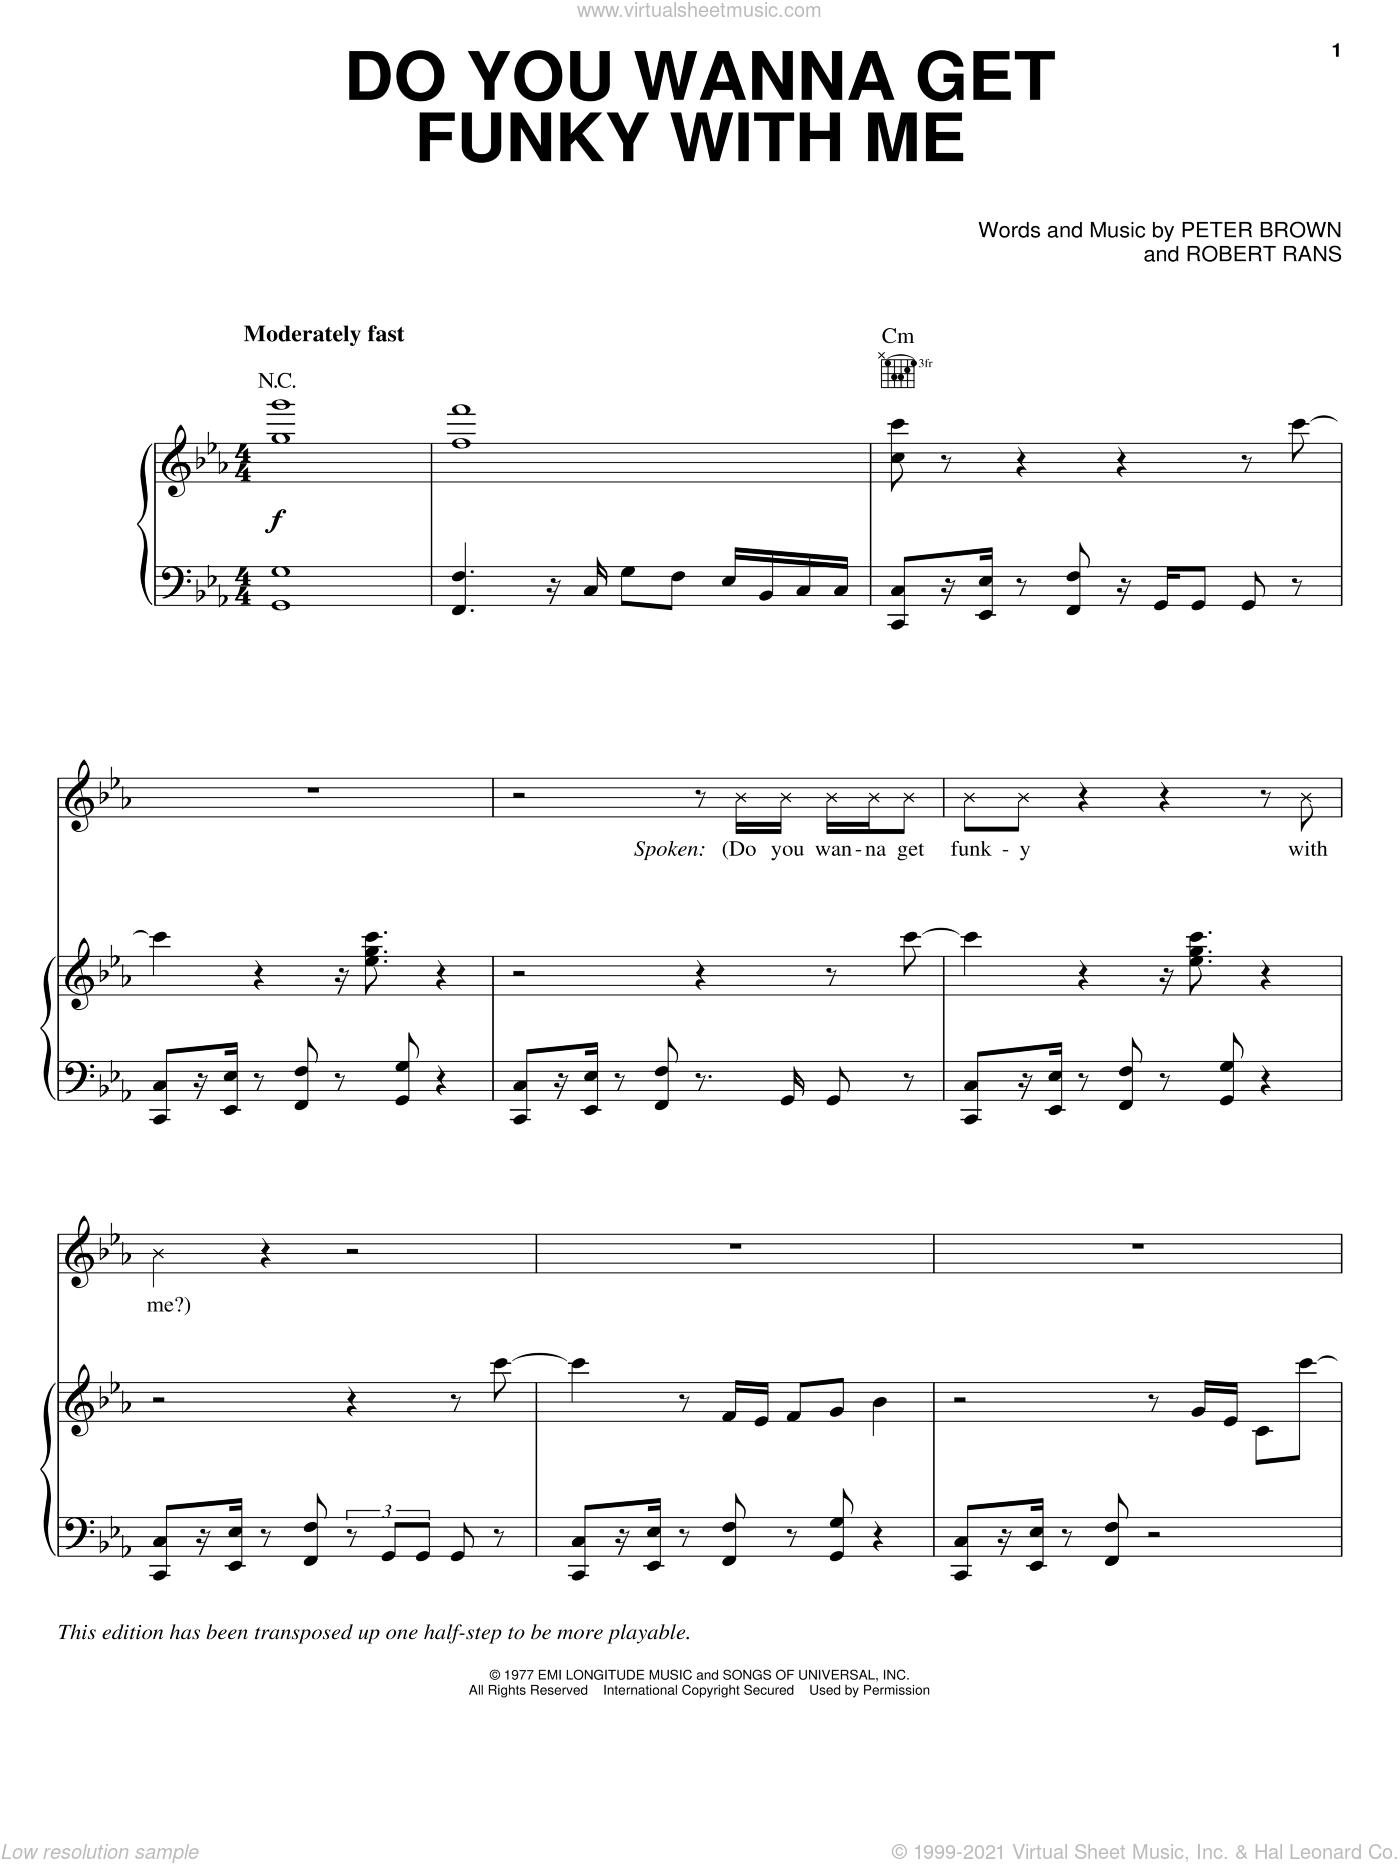 Do You Wanna Get Funky With Me sheet music for voice, piano or guitar by Pete Brown. Score Image Preview.